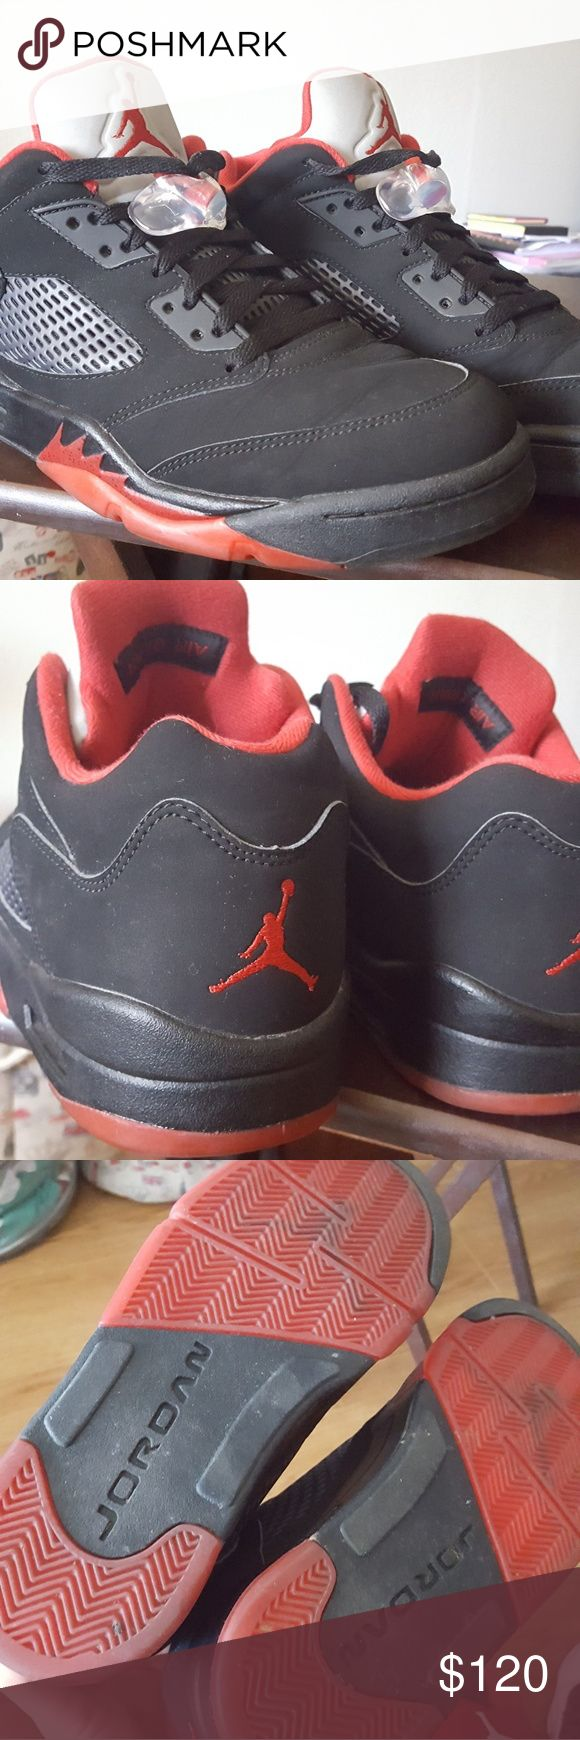 Jordan 5 low alternate 90 Very slightly used. Comes with replacement box Jordan Shoes